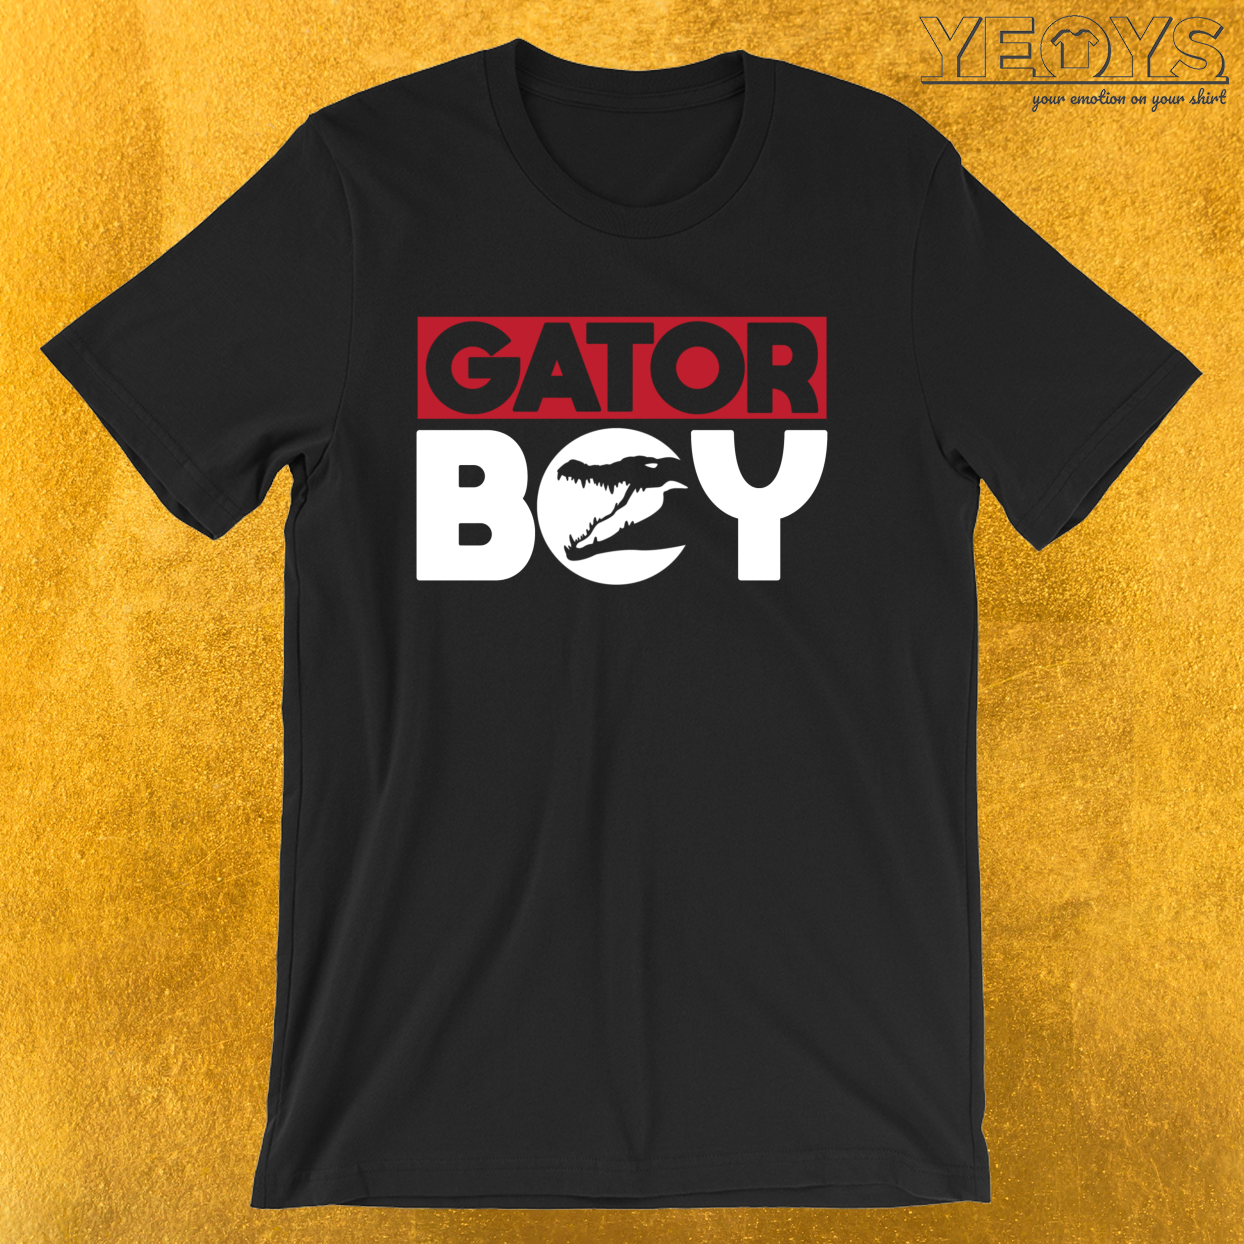 Gator Boy – Reptile Party Alligator Tee